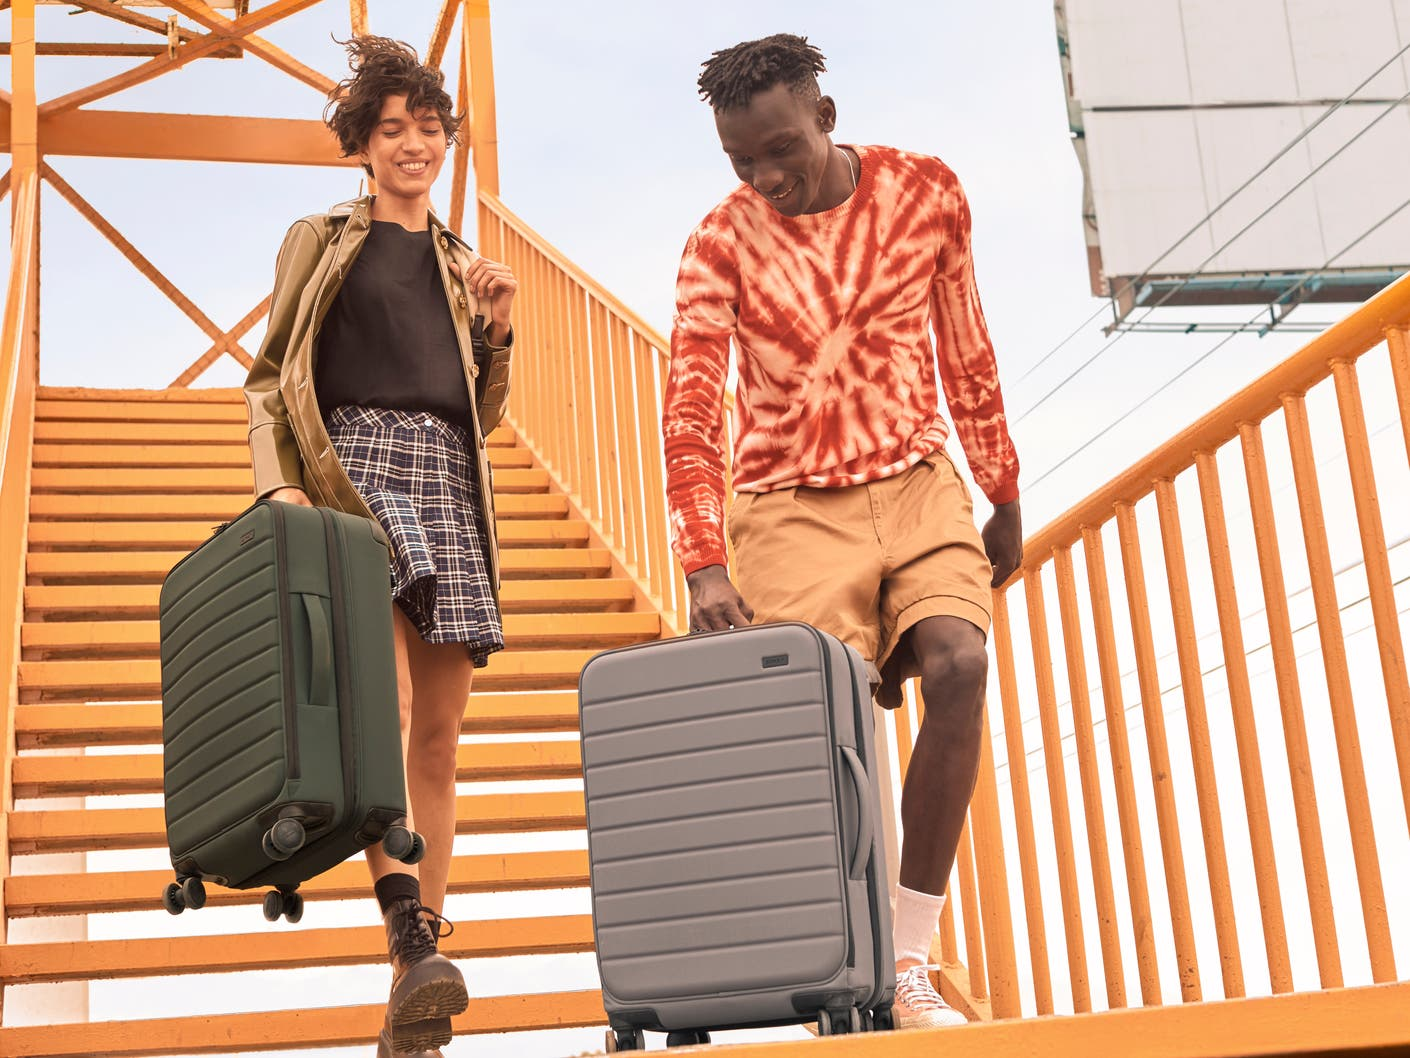 A woman carrying a green suitcase and a man holding a gray suitcase walking down an orange staircase.